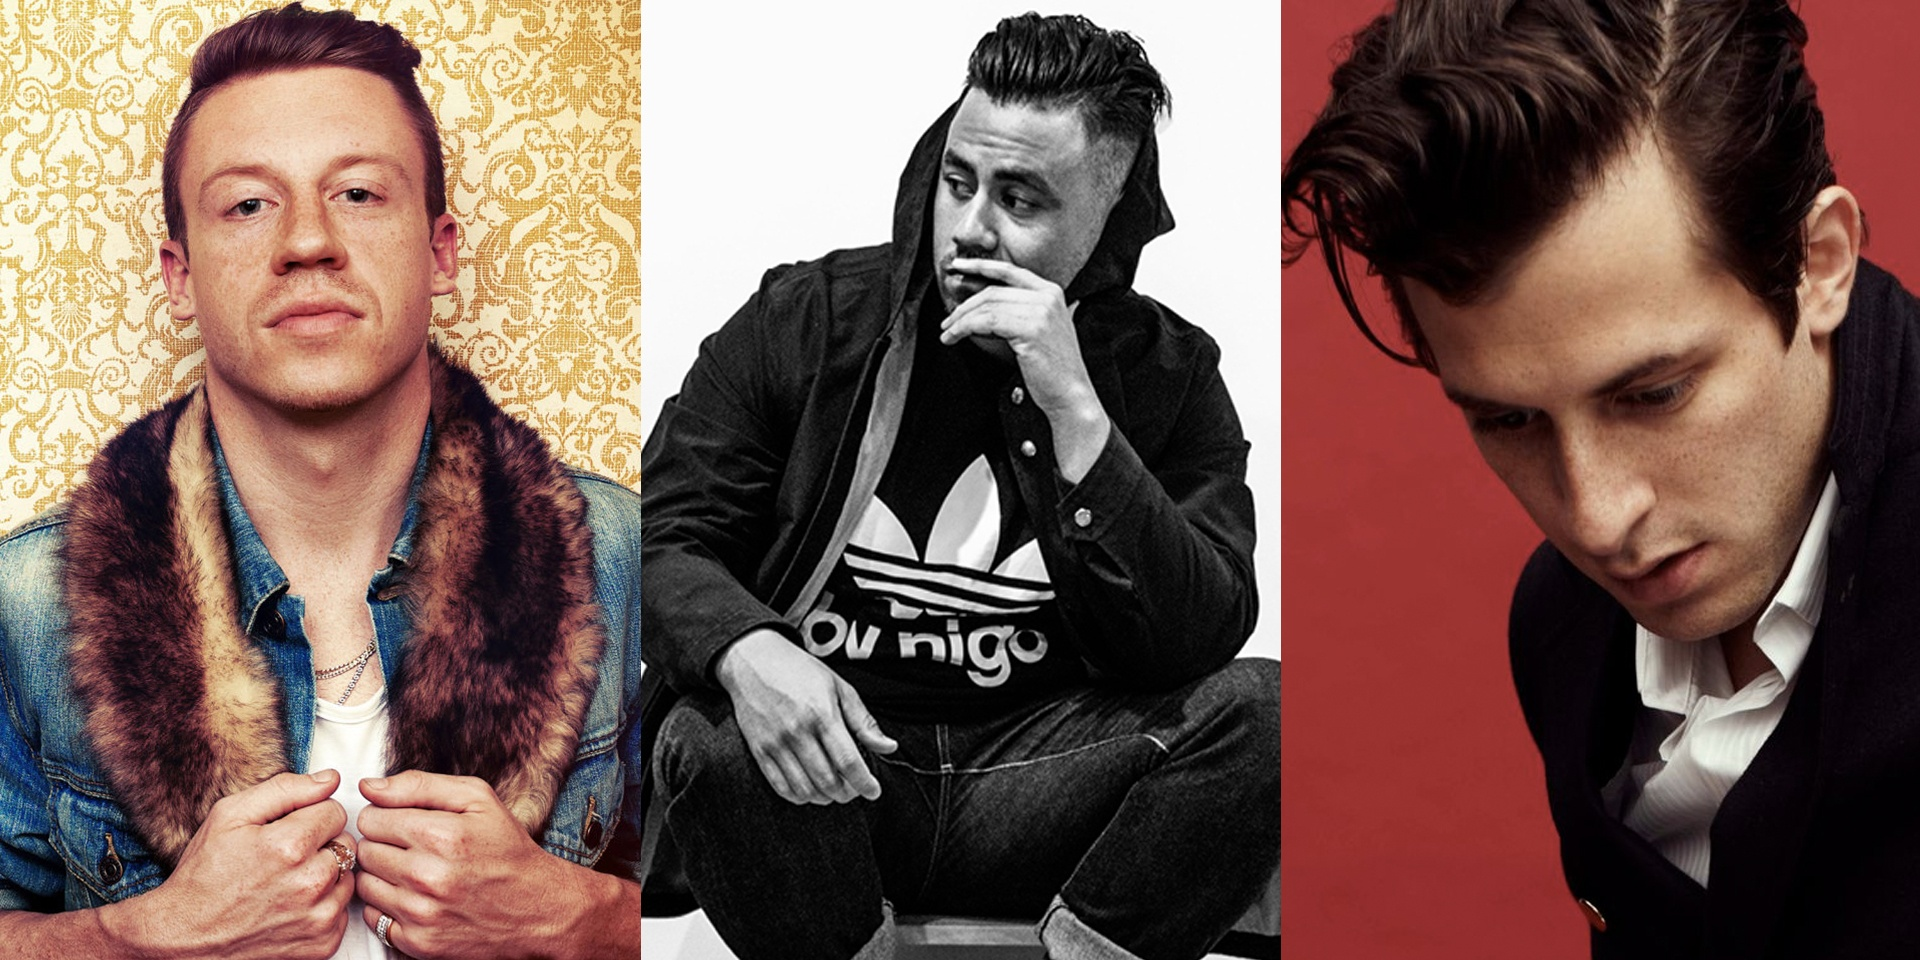 Macklemore & Ryan Lewis, Ta-Ku, Mark Ronson are all coming to Asia